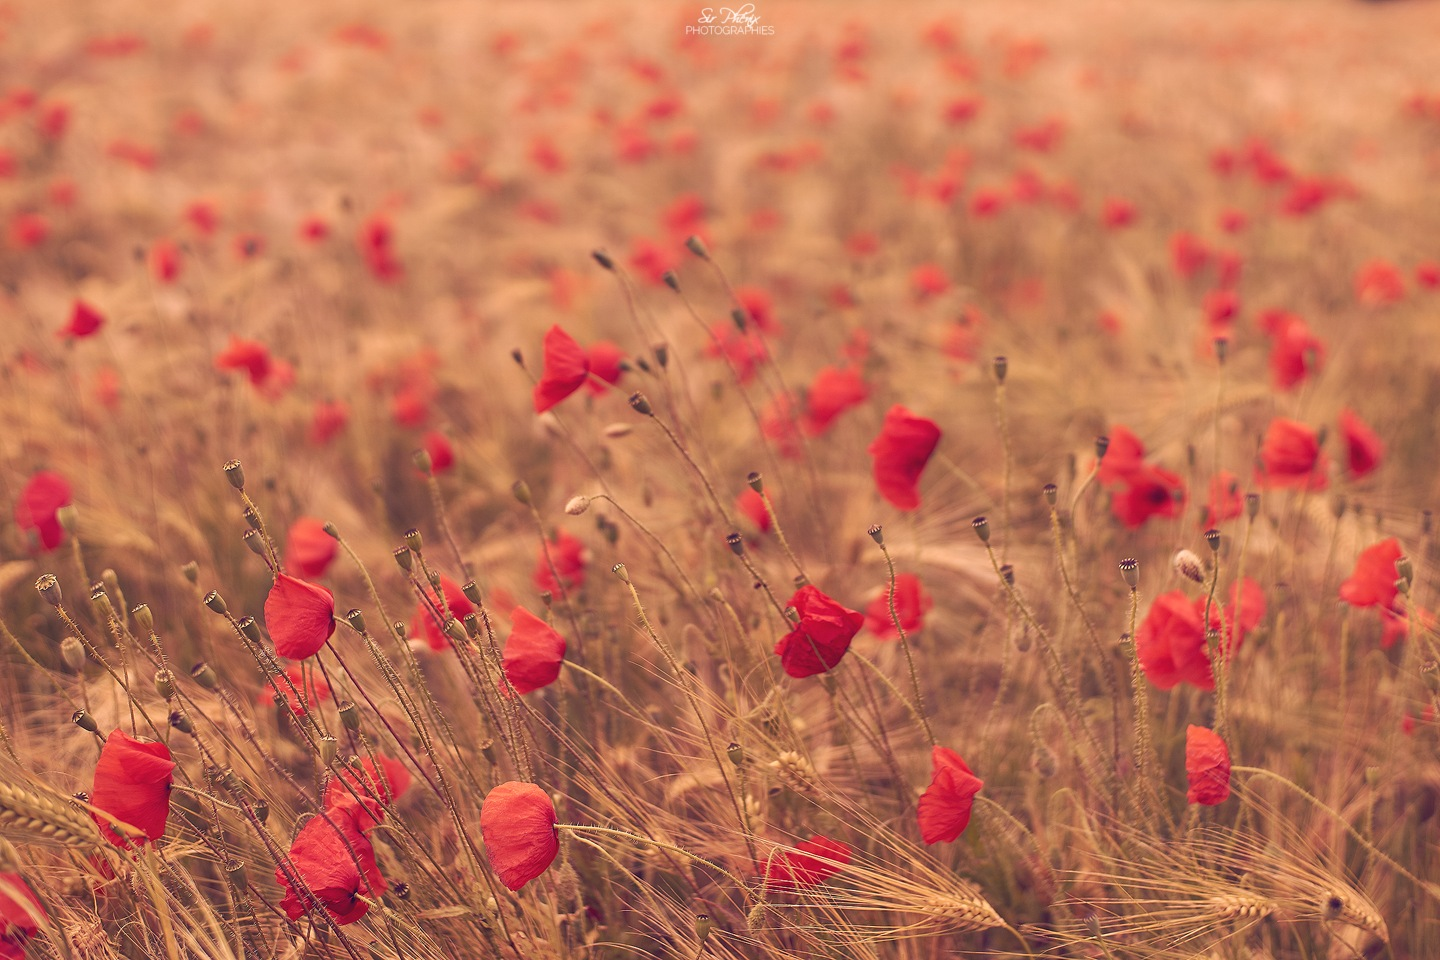 Wind, Poppies and Barley by SirPhenix